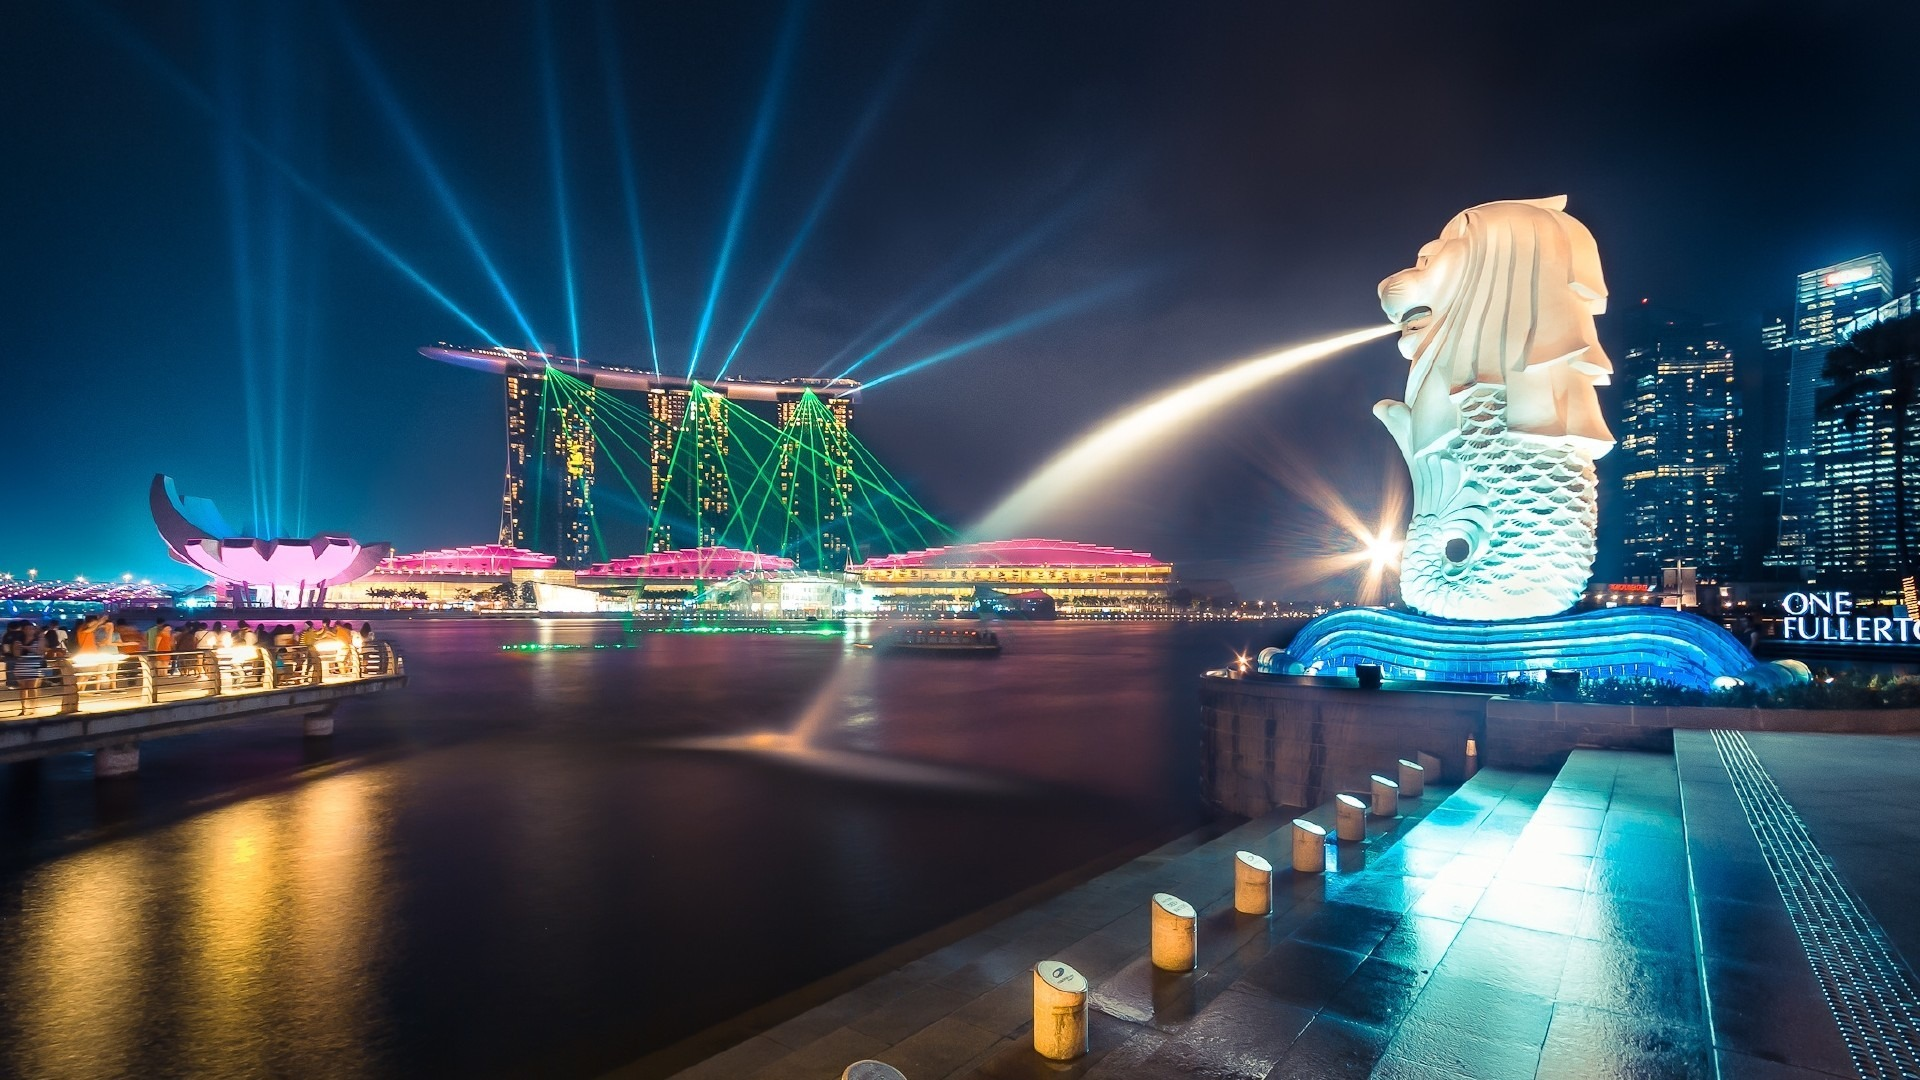 lion fountain, night, buildings, singapore